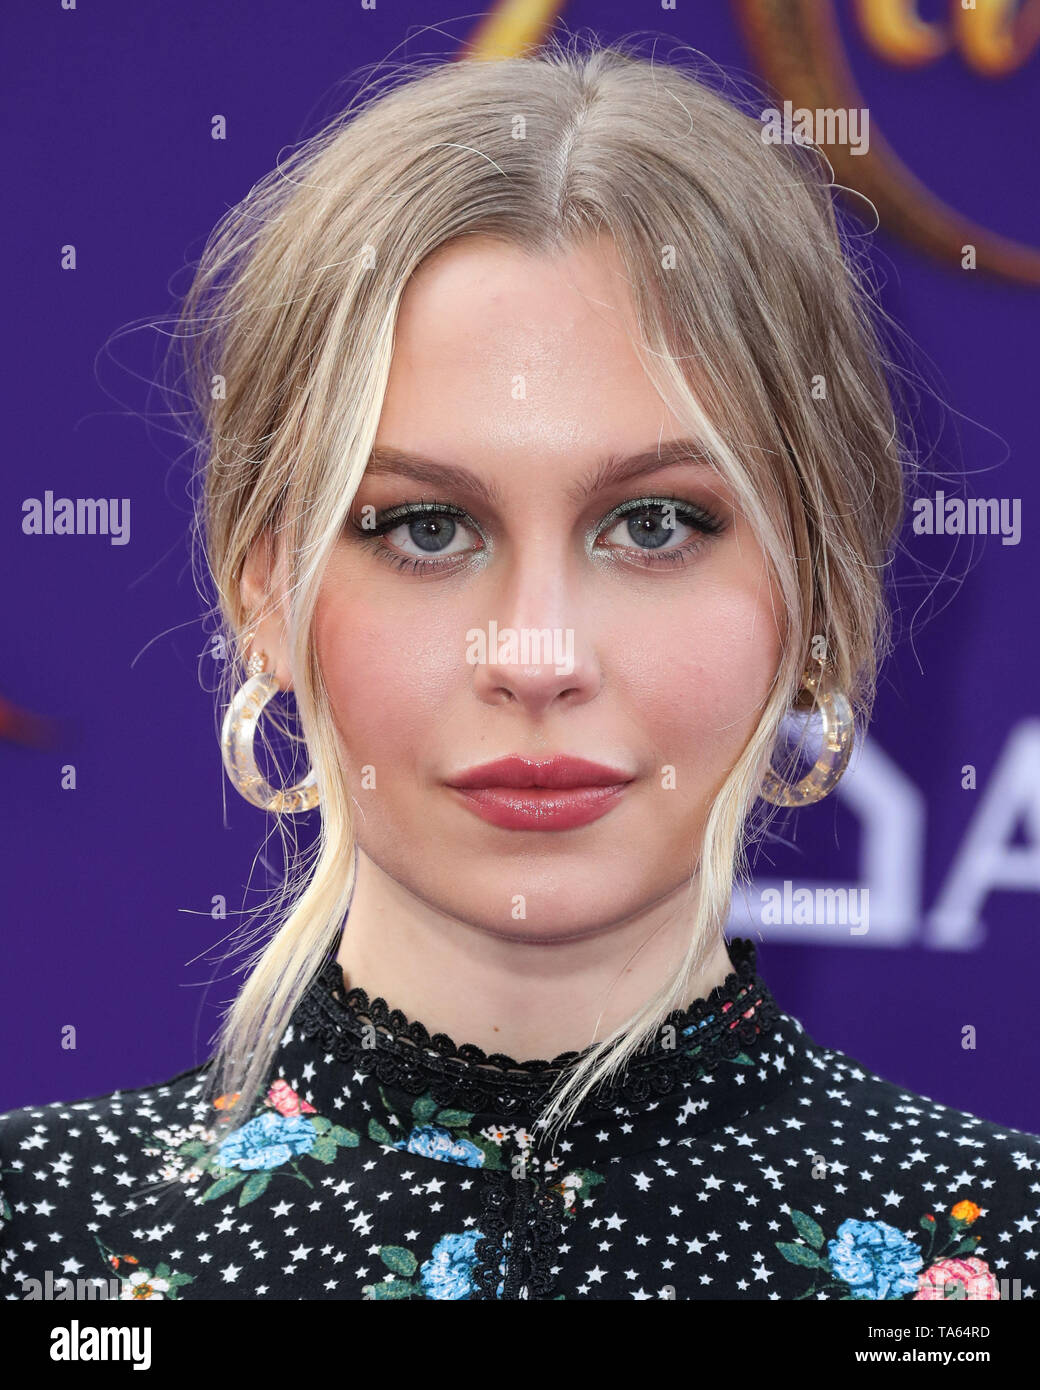 Hollywood, United States. 21st May, 2019. HOLLYWOOD, LOS ANGELES, CALIFORNIA, USA - MAY 21: Actress Natasha Bure arrives at the World Premiere Of Disney's 'Aladdin' held at the El Capitan Theatre on May 21, 2019 in Hollywood, Los Angeles, California, United States. (Photo by Xavier Collin/Image Press Agency) Credit: Image Press Agency/Alamy Live News - Stock Image